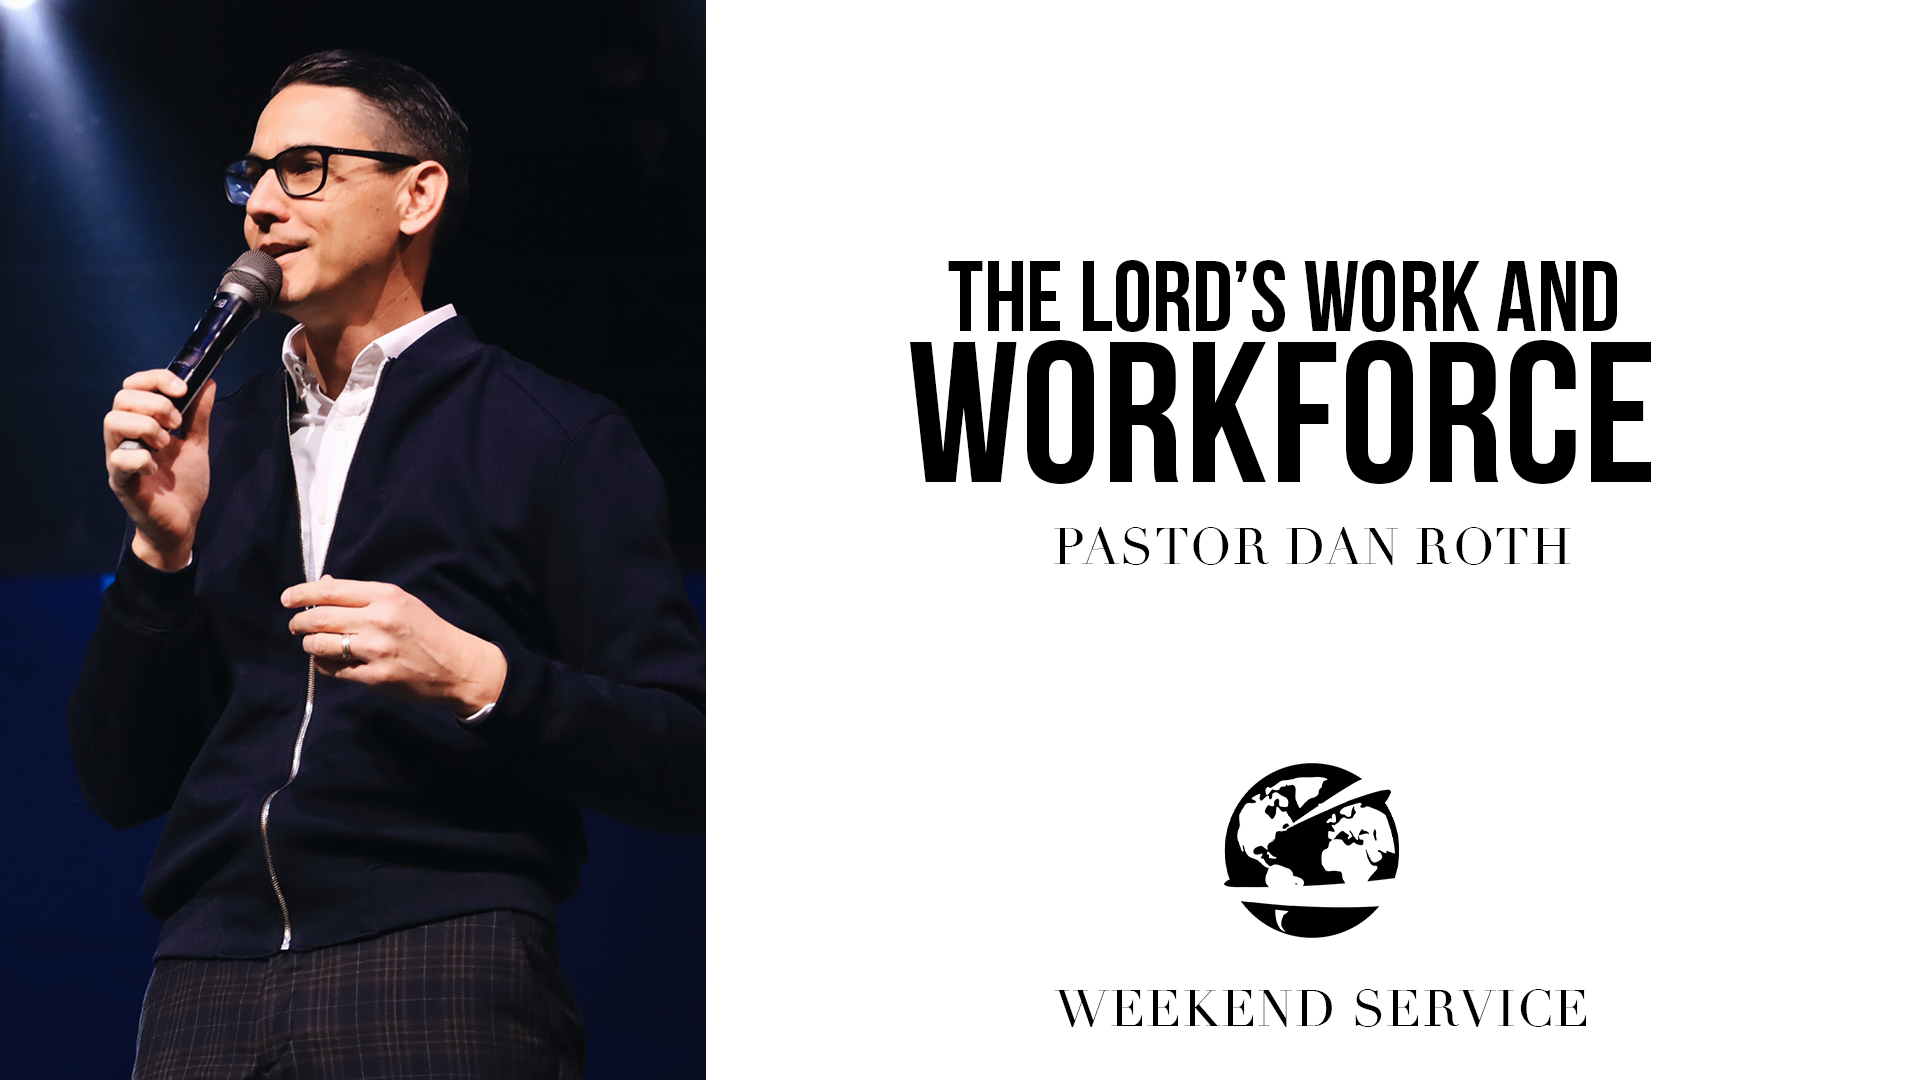 Watch The Lord's Work and Workforce Part 1